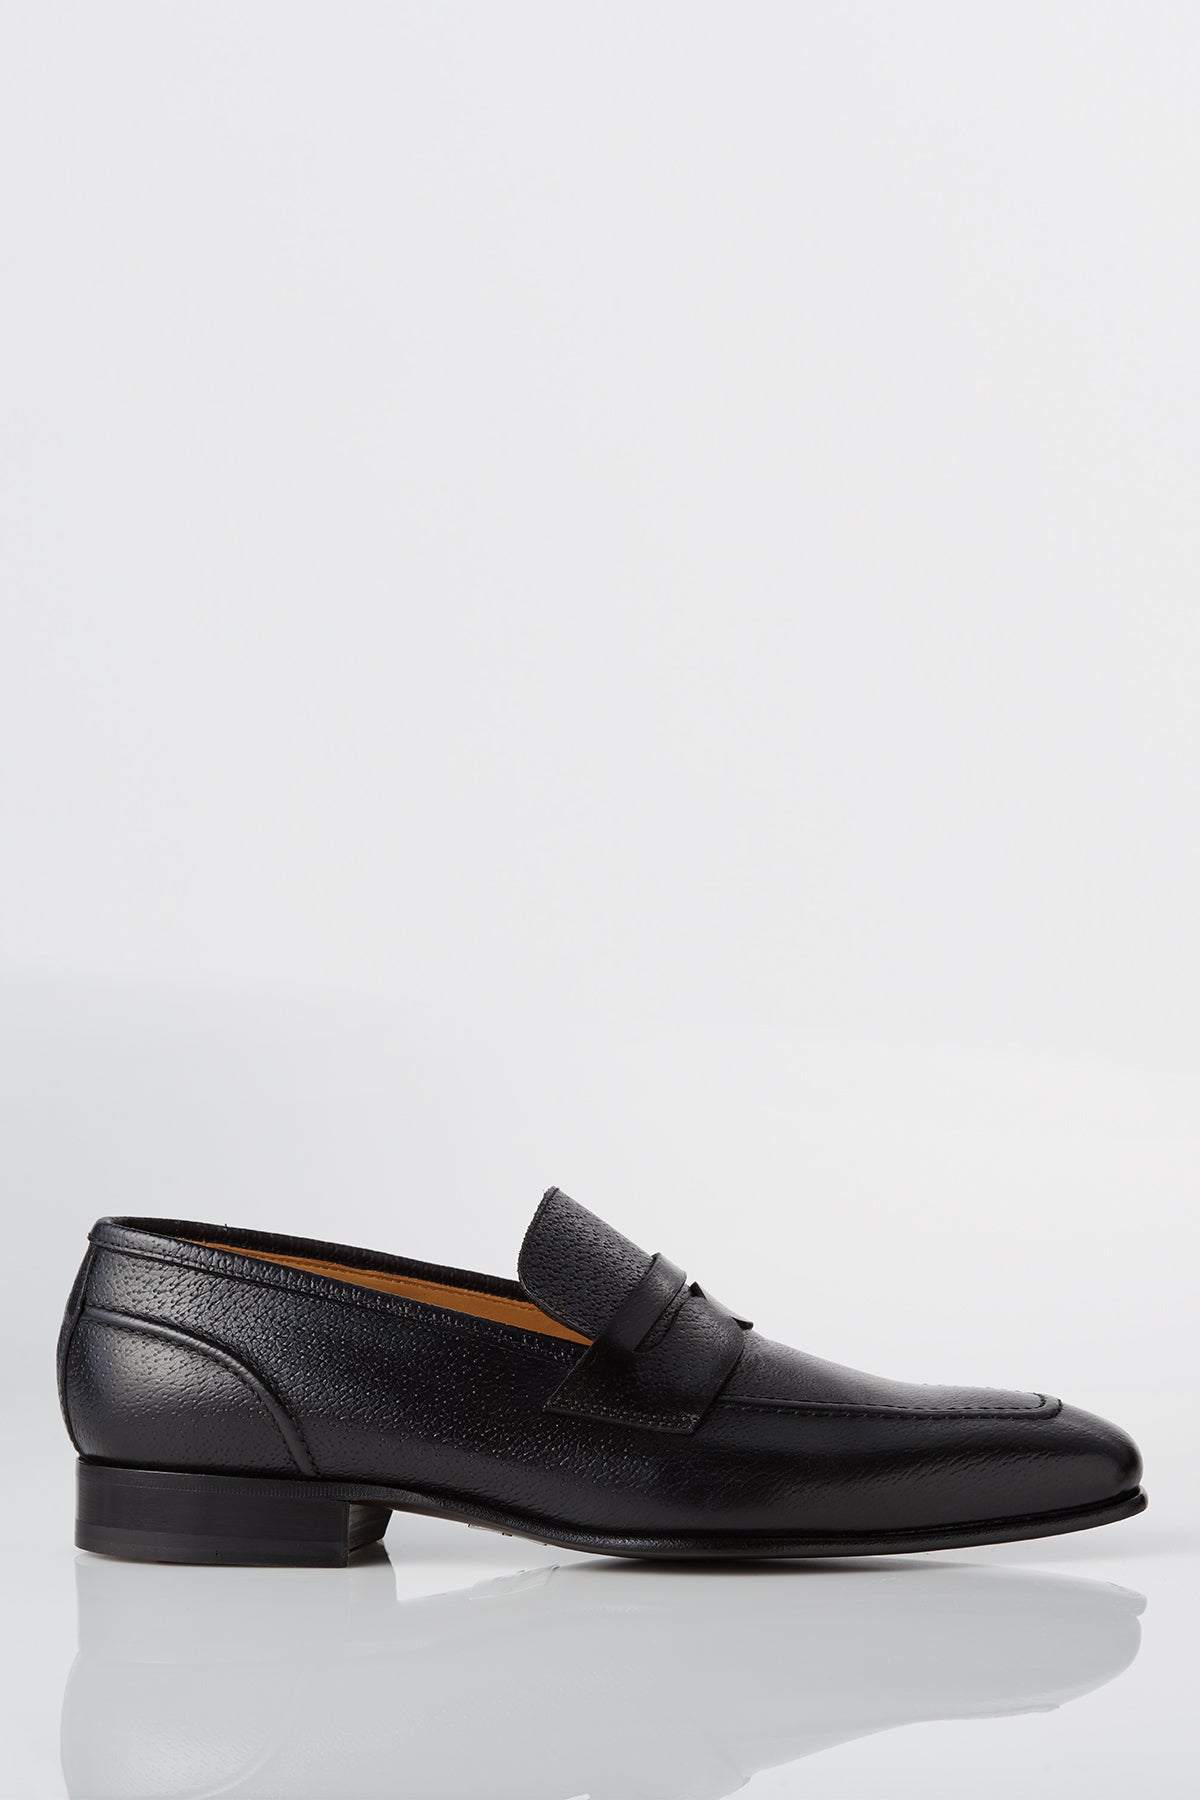 David August Leather Penny Loafer in Black Di Bianco